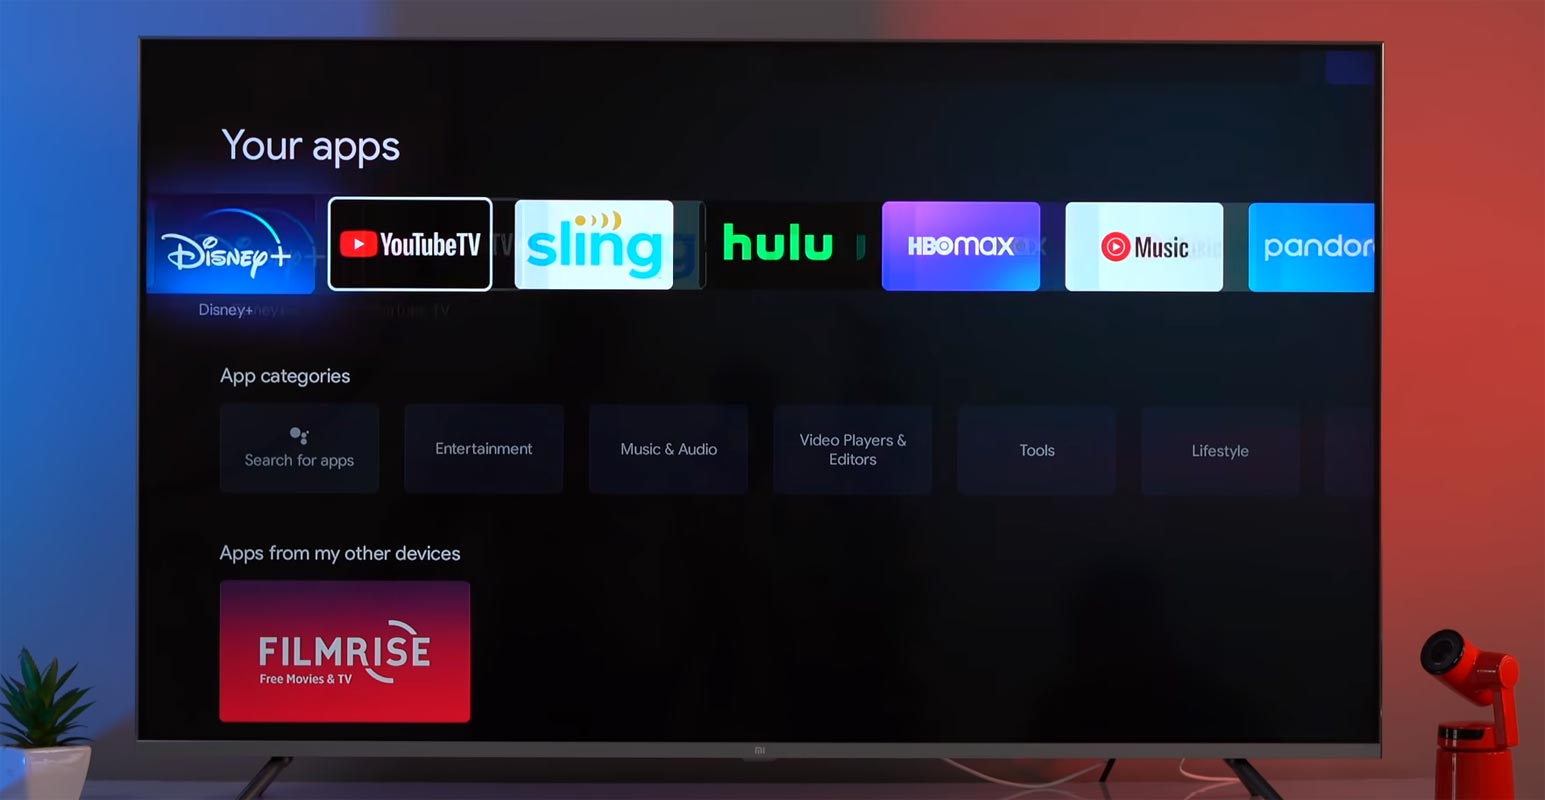 YouTube TV in Google TV